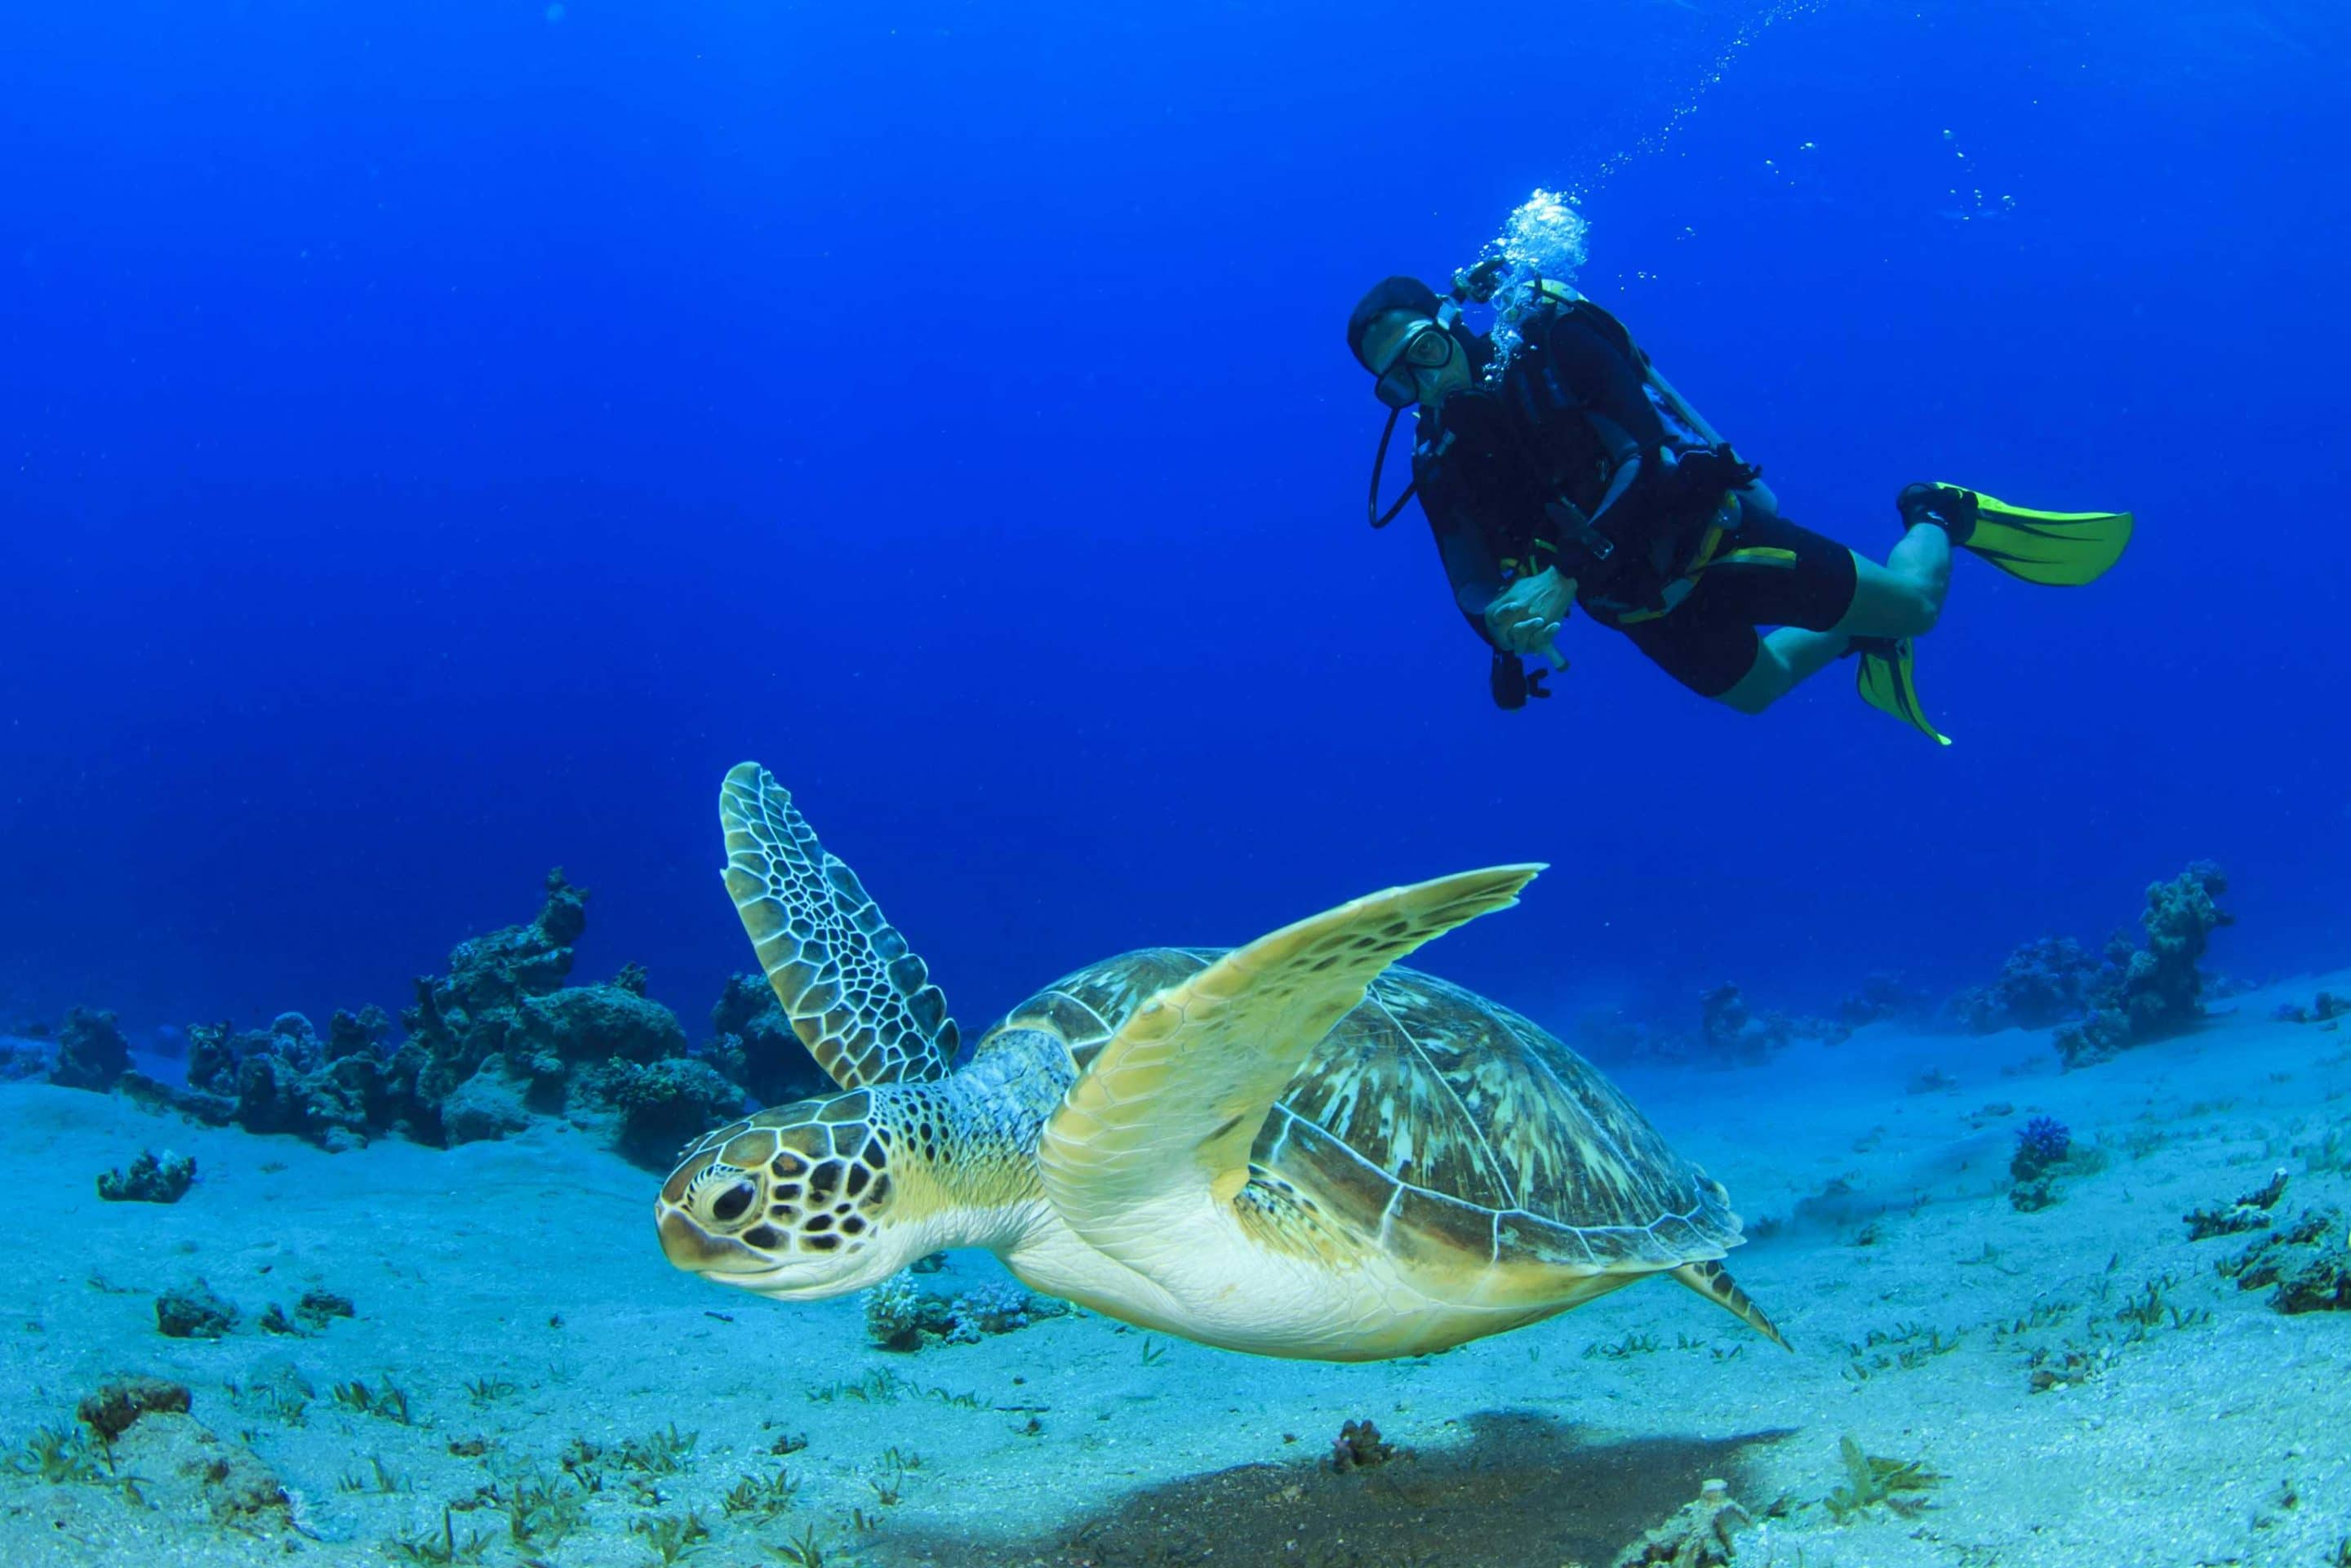 Man Scuba Diving underwater with turtle